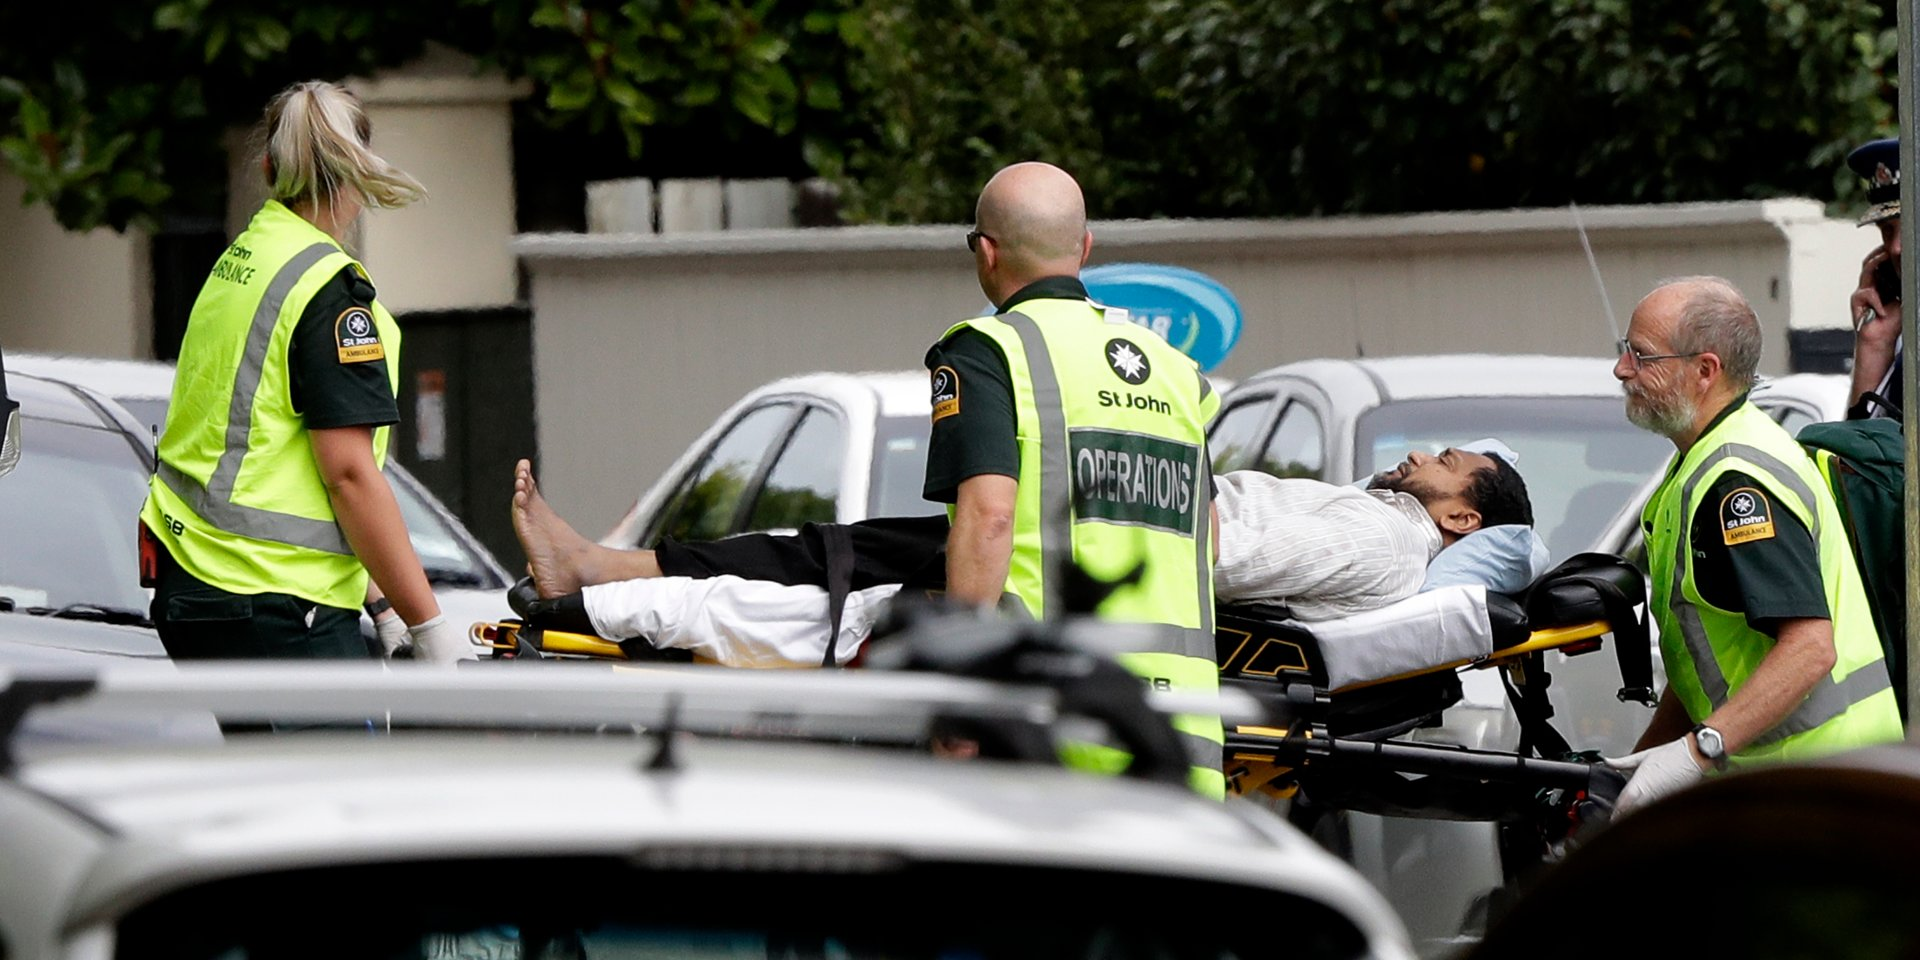 Christchurch Shooting Picture: PewDiePie Provides Statement Following New Zealand Shooting